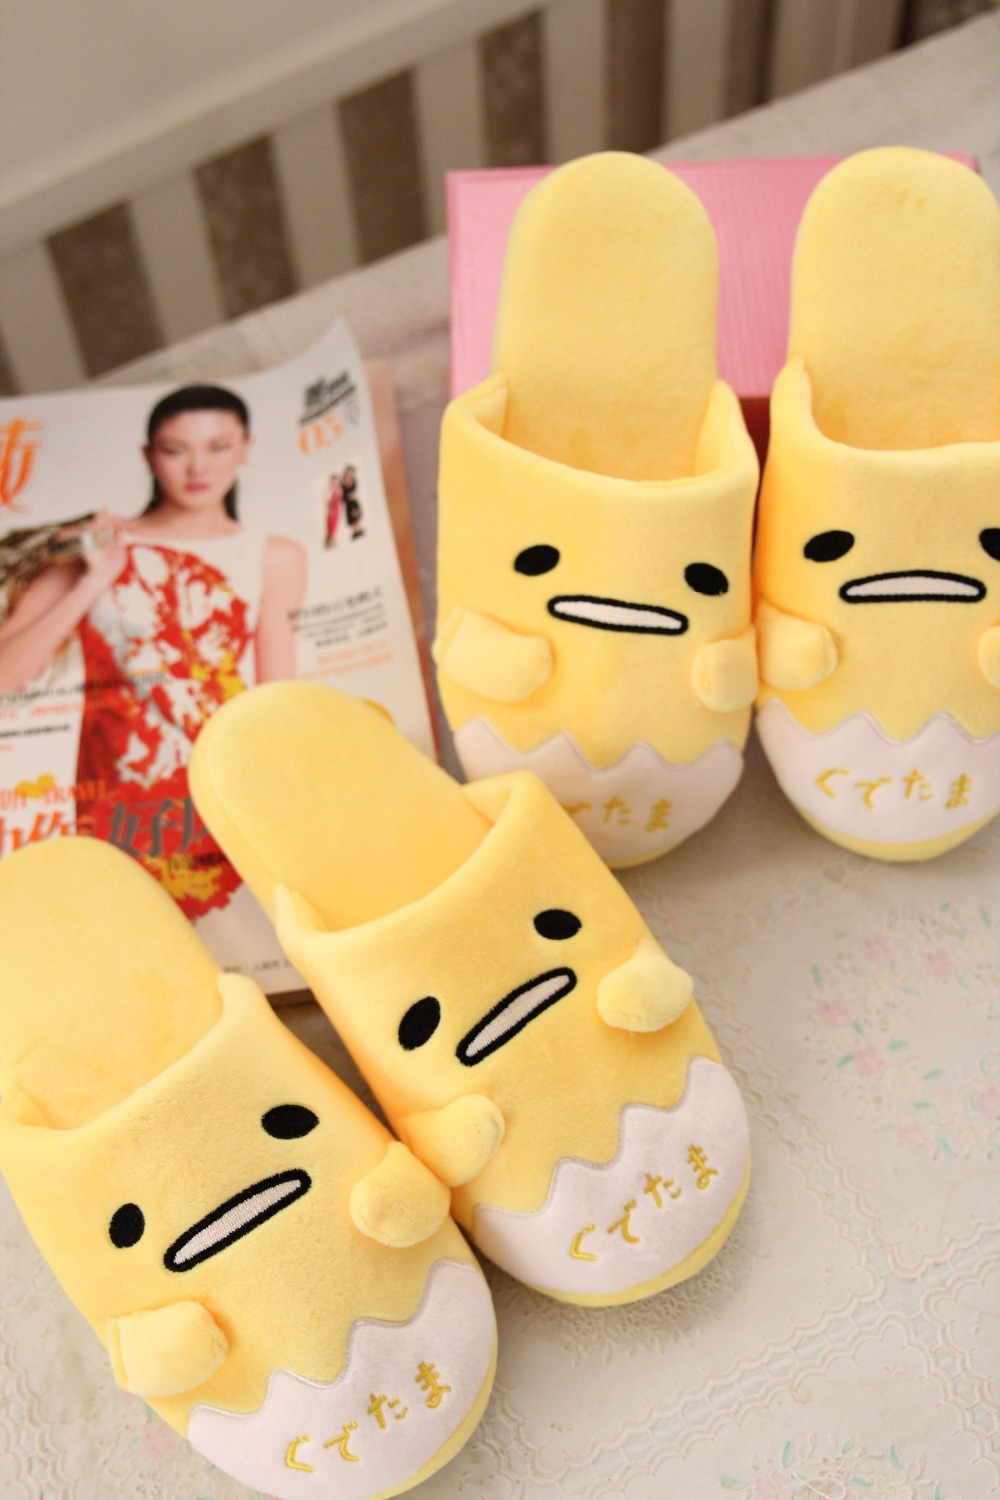 Plush cute 1 pair cartoon animation gudetama  lazy egg funny winter home floor slippers holiday toy girl gift retail gudetama lazy egg eggs jun egg lazy balls creative nap u pillow neck pillow cartoon hat plush doll wj01